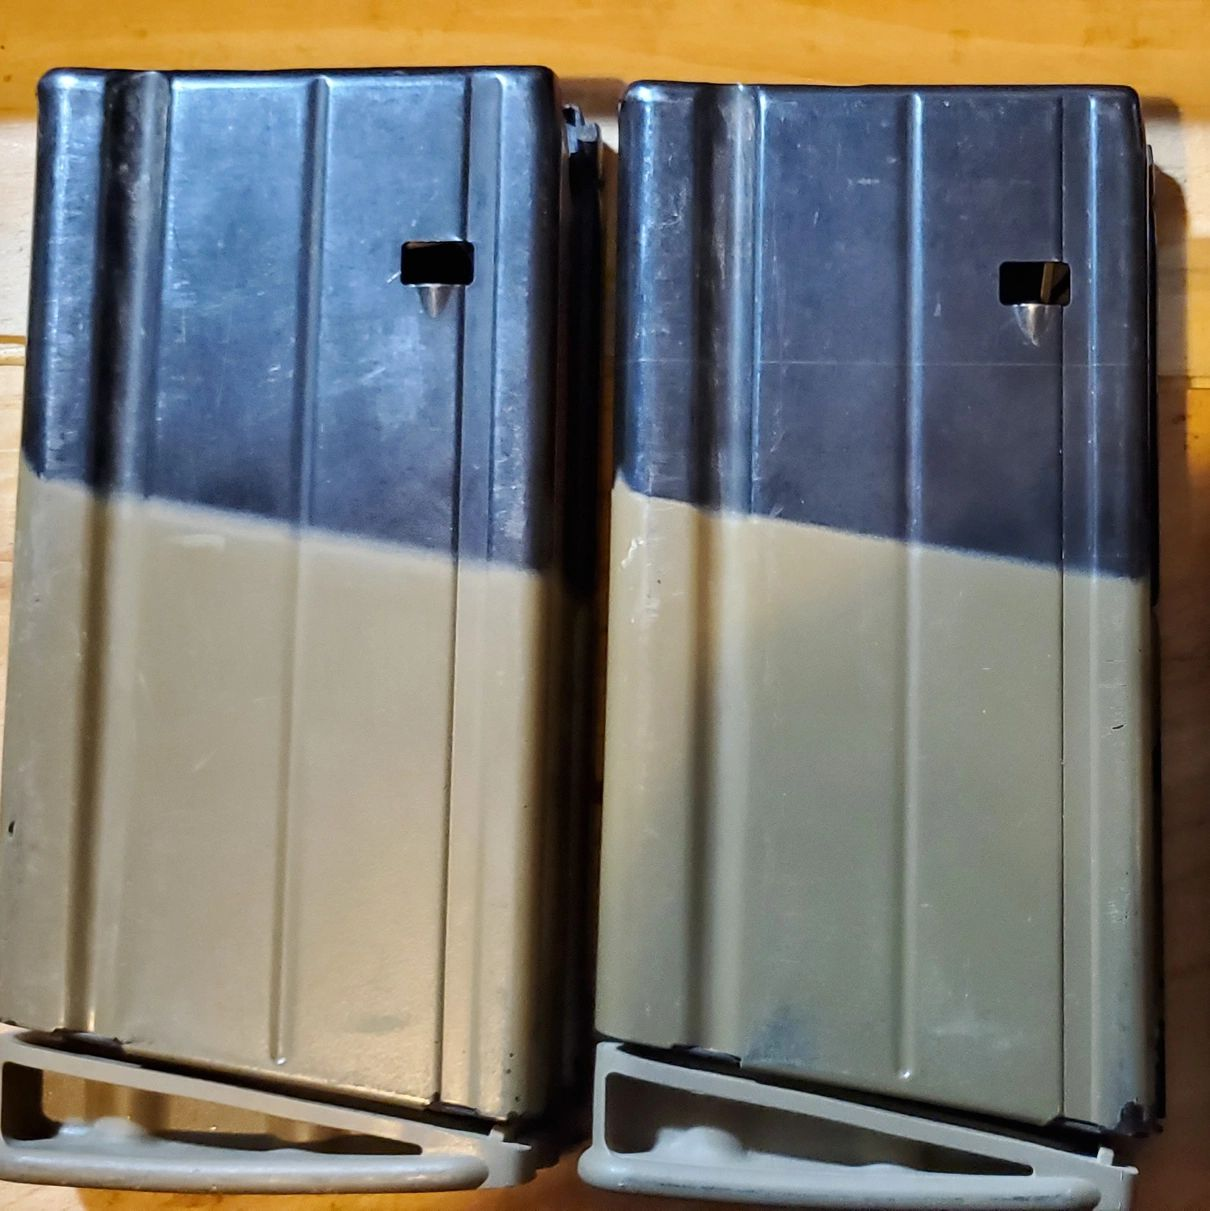 SCAR 17 MAGS FACTORY MAG. 20 ROUND 39.99 EACH